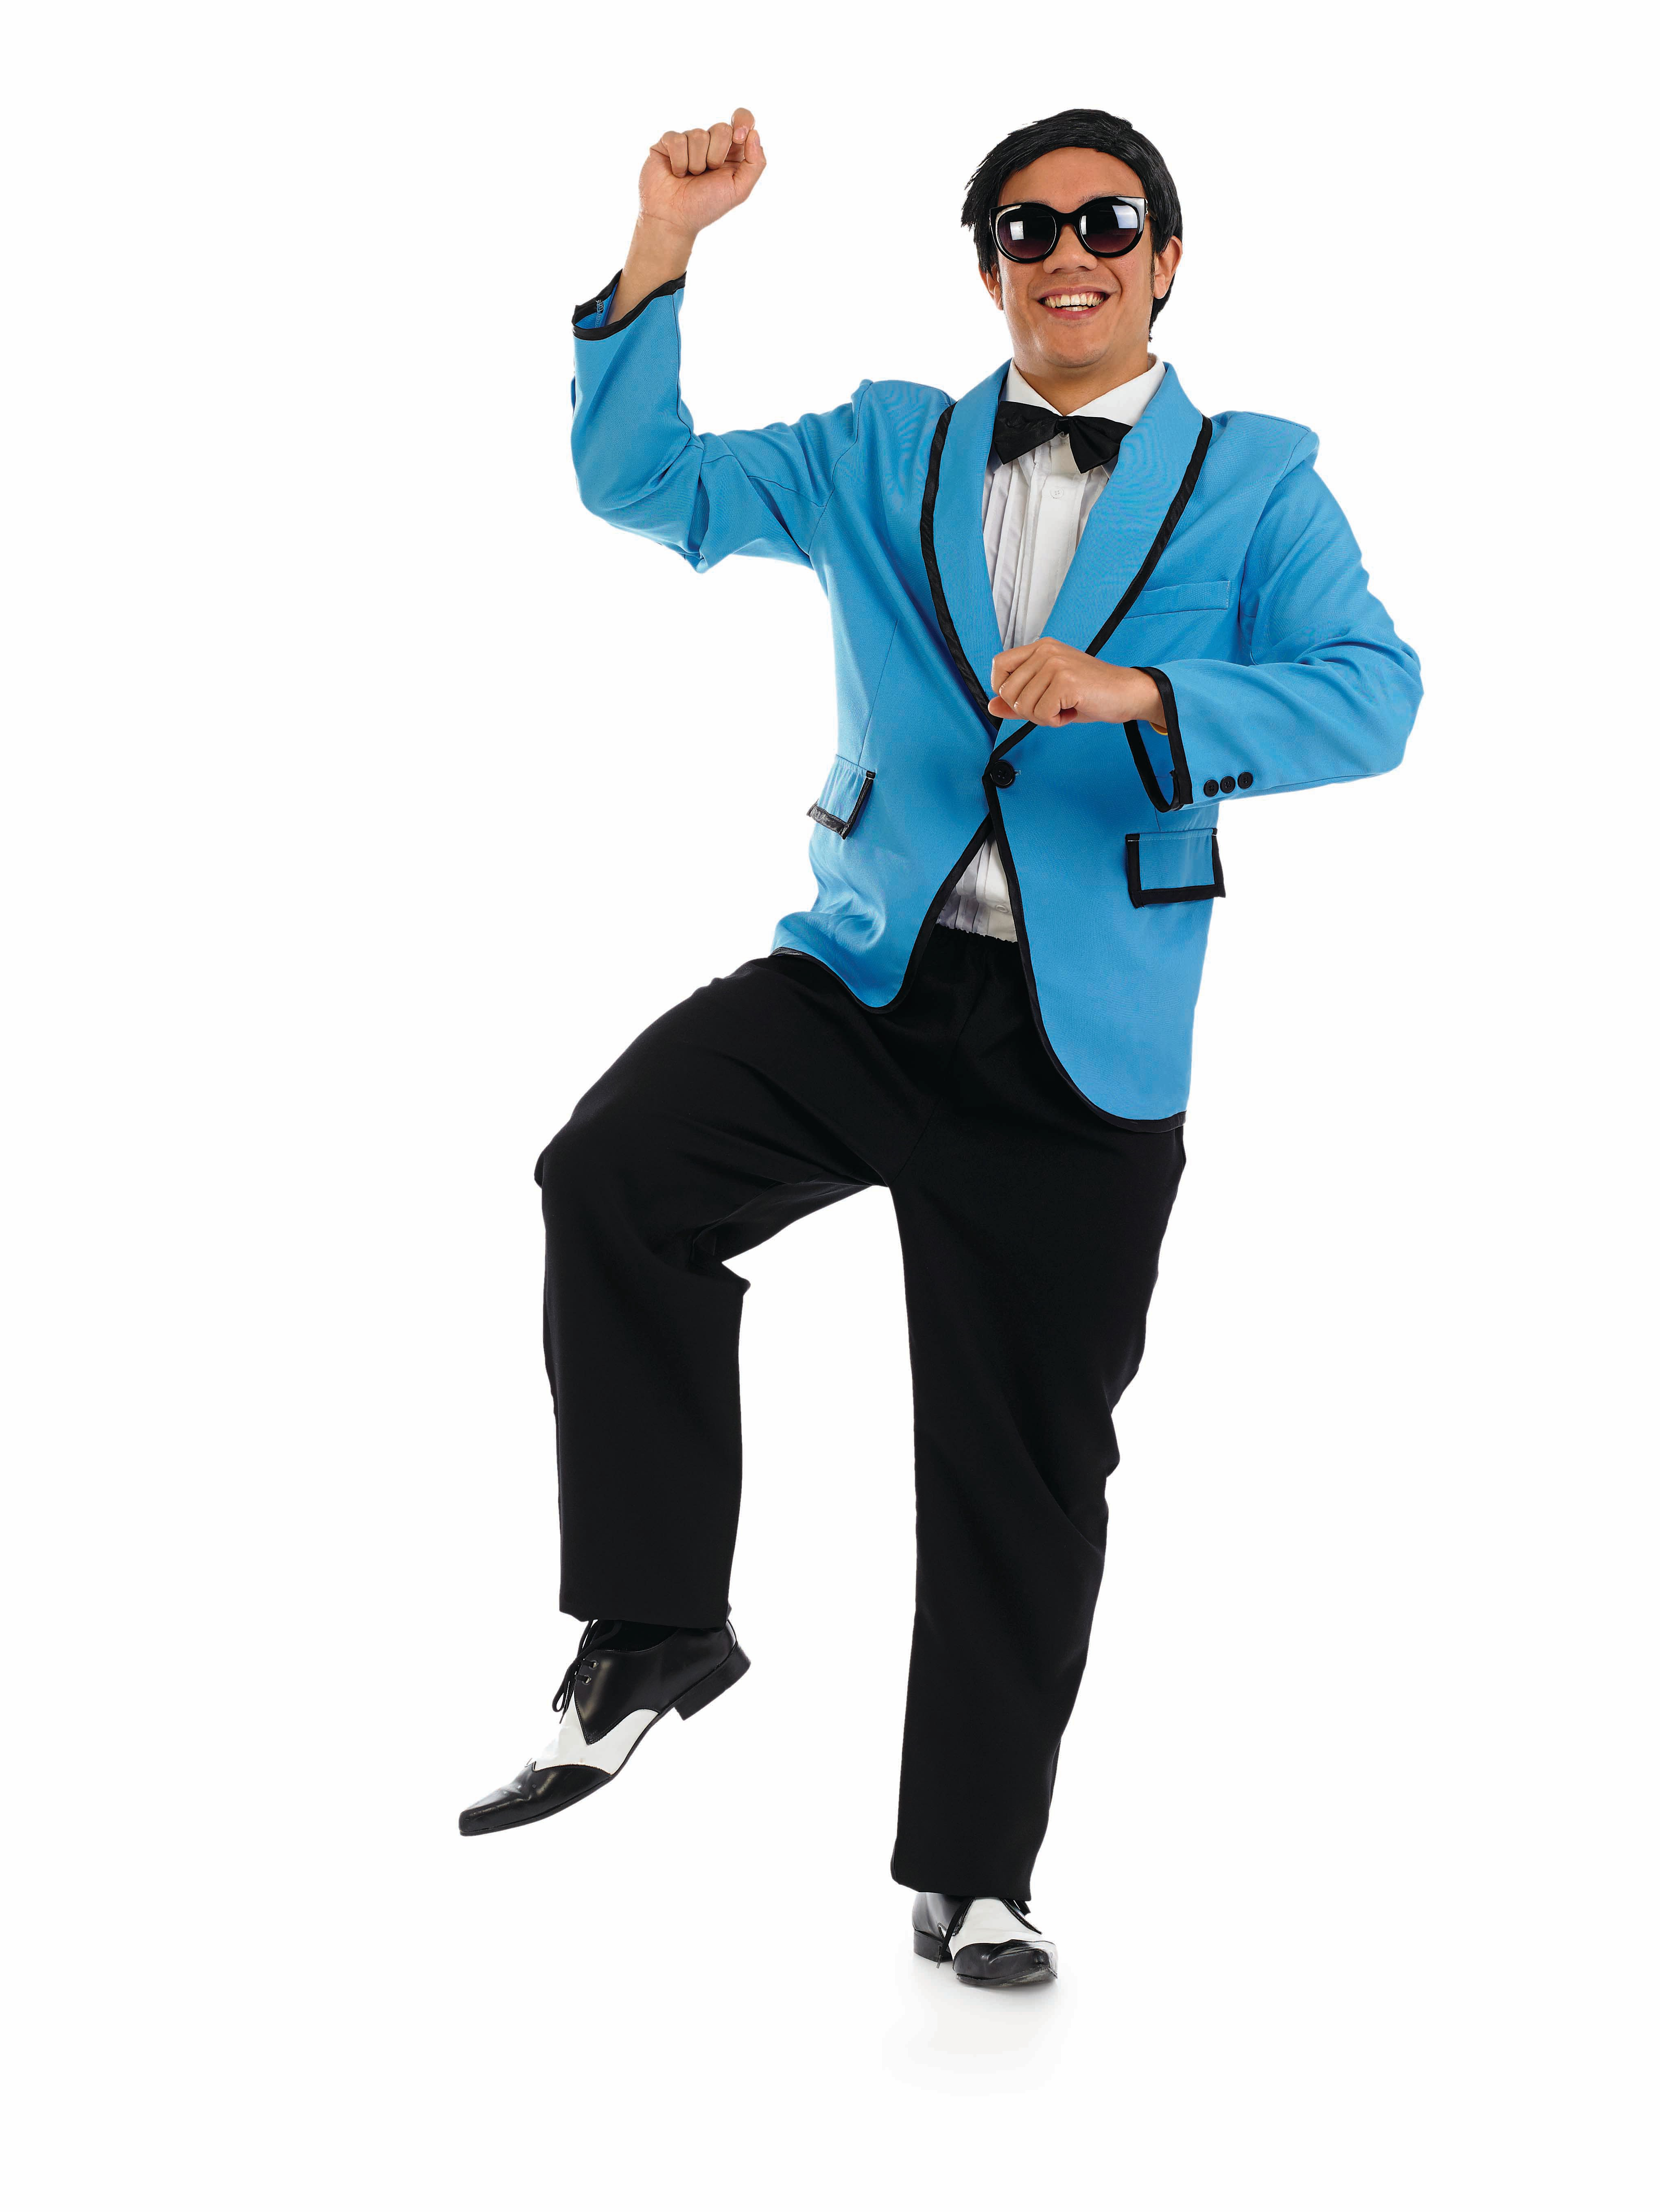 Adult Psy Korean dance craze costume.3573